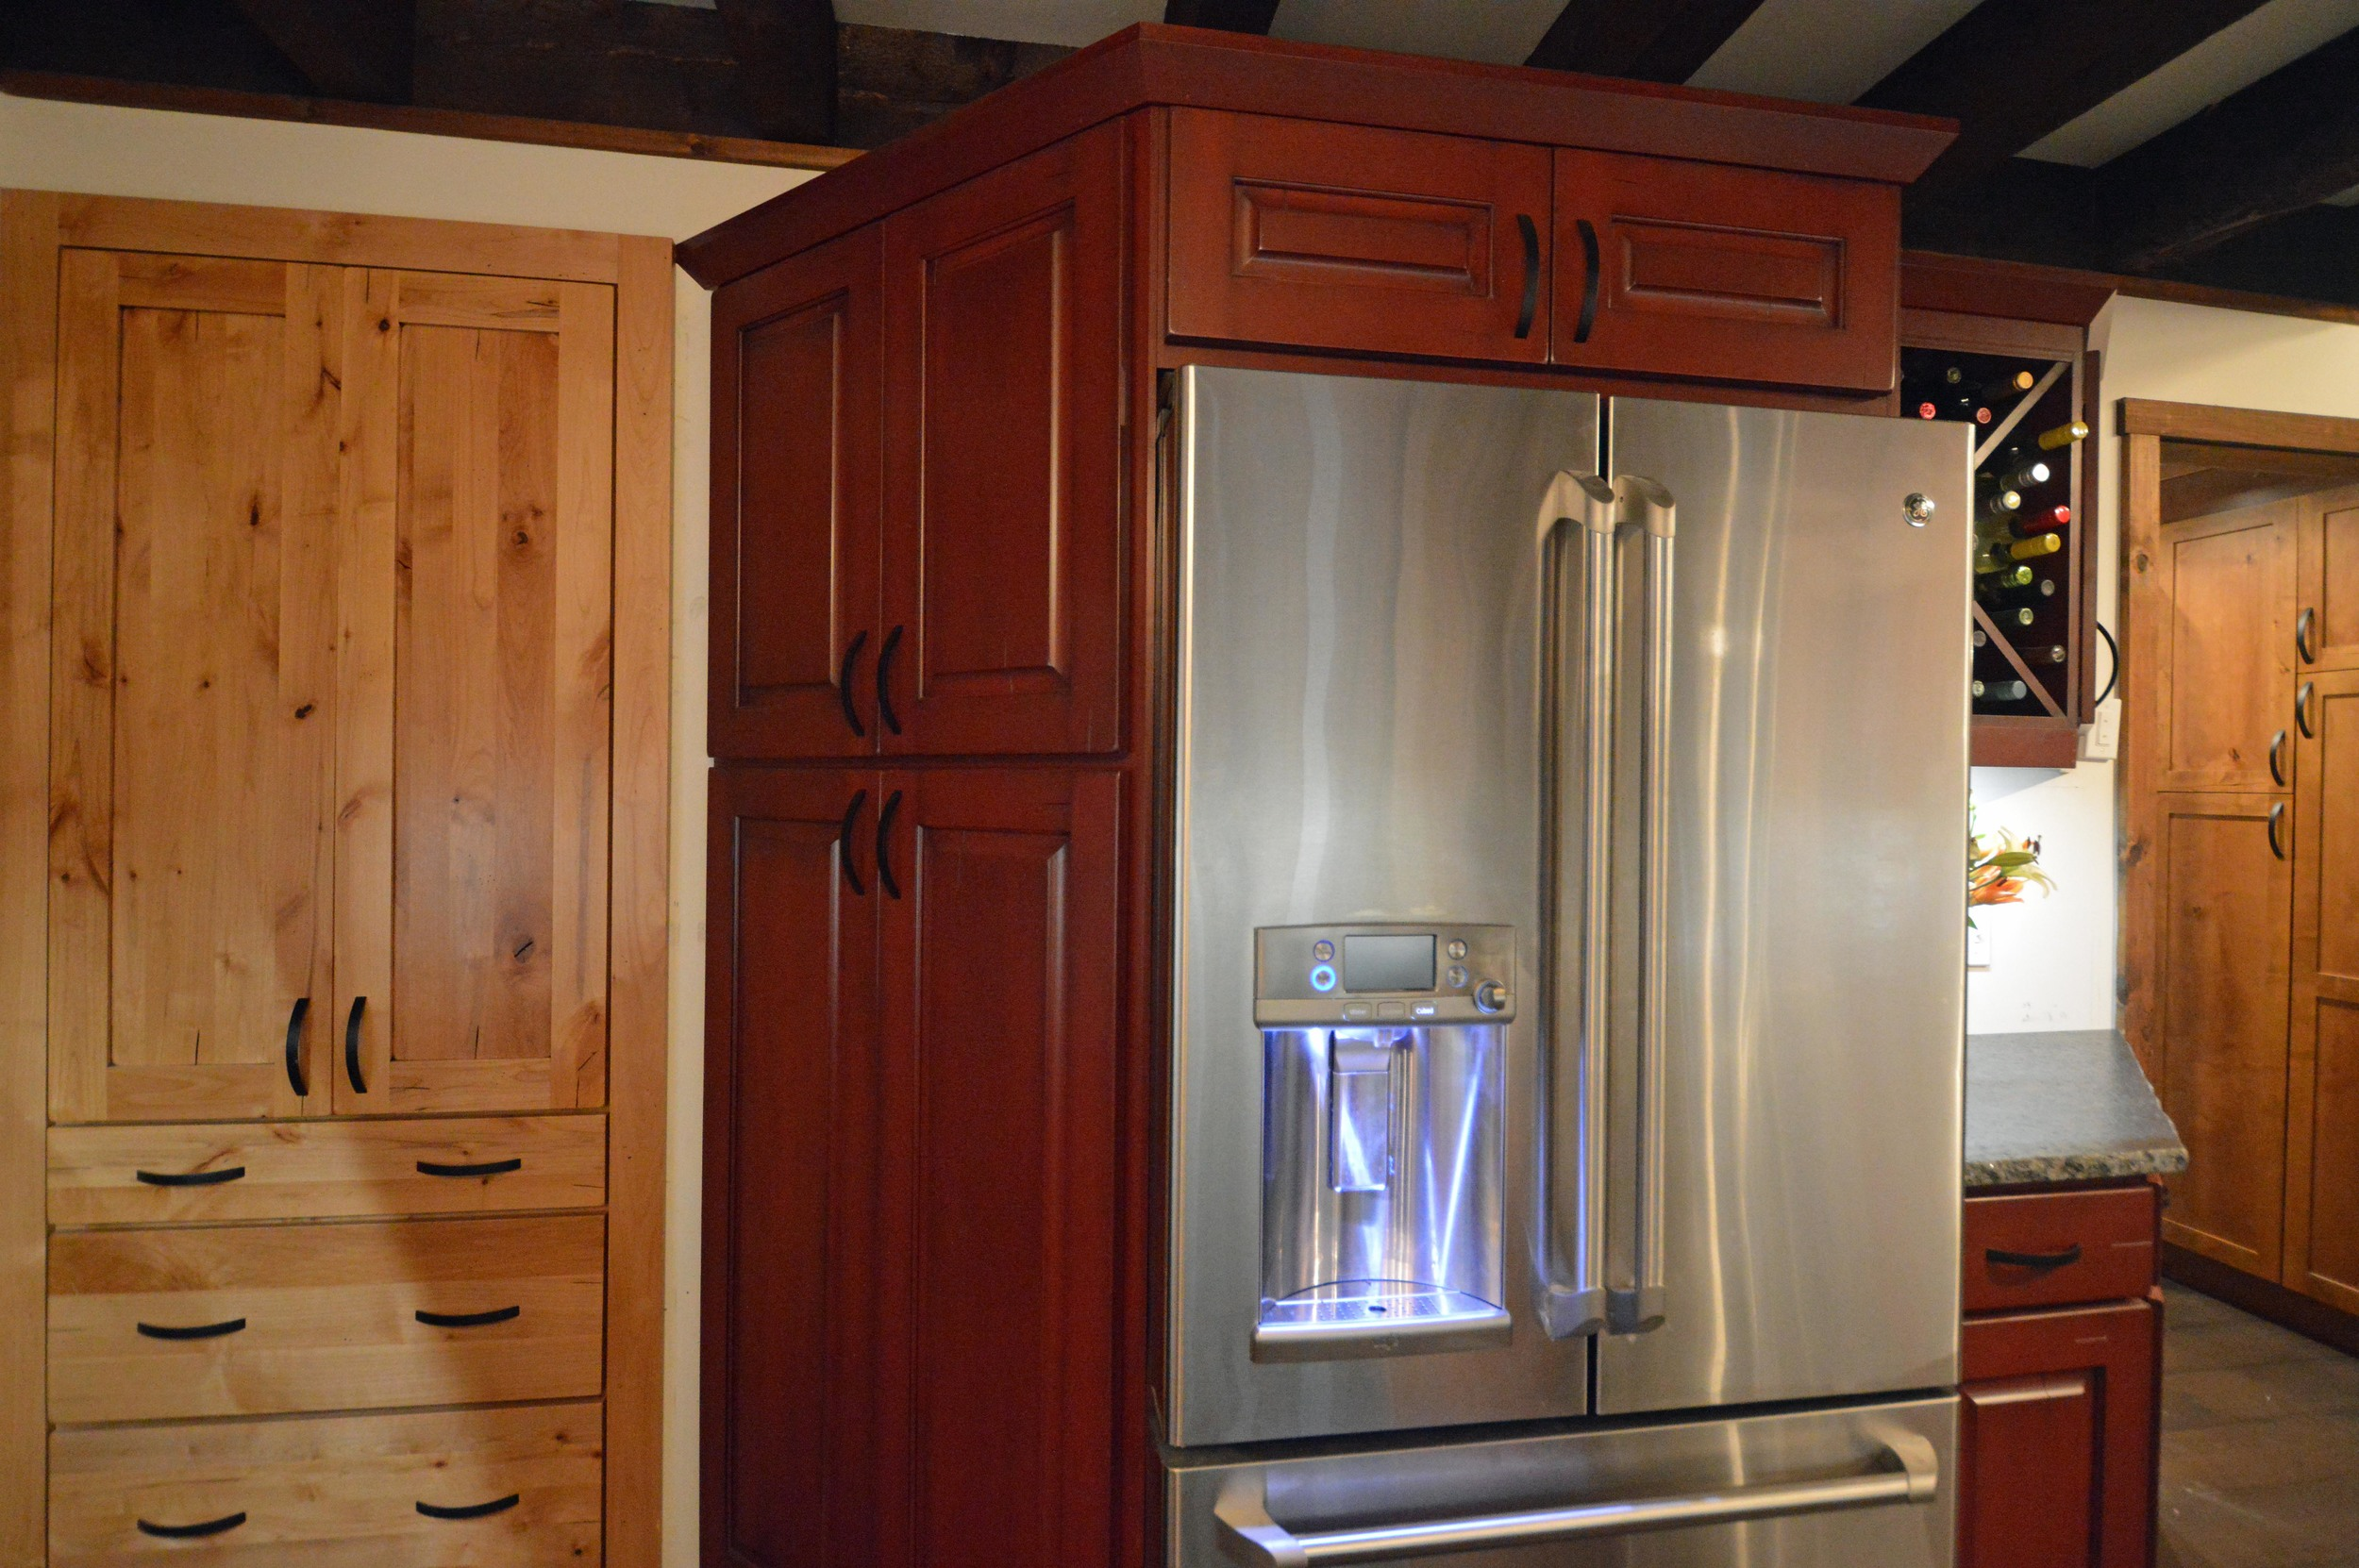 Rustic Cabin Kitchen Remodel near Lake George, NY